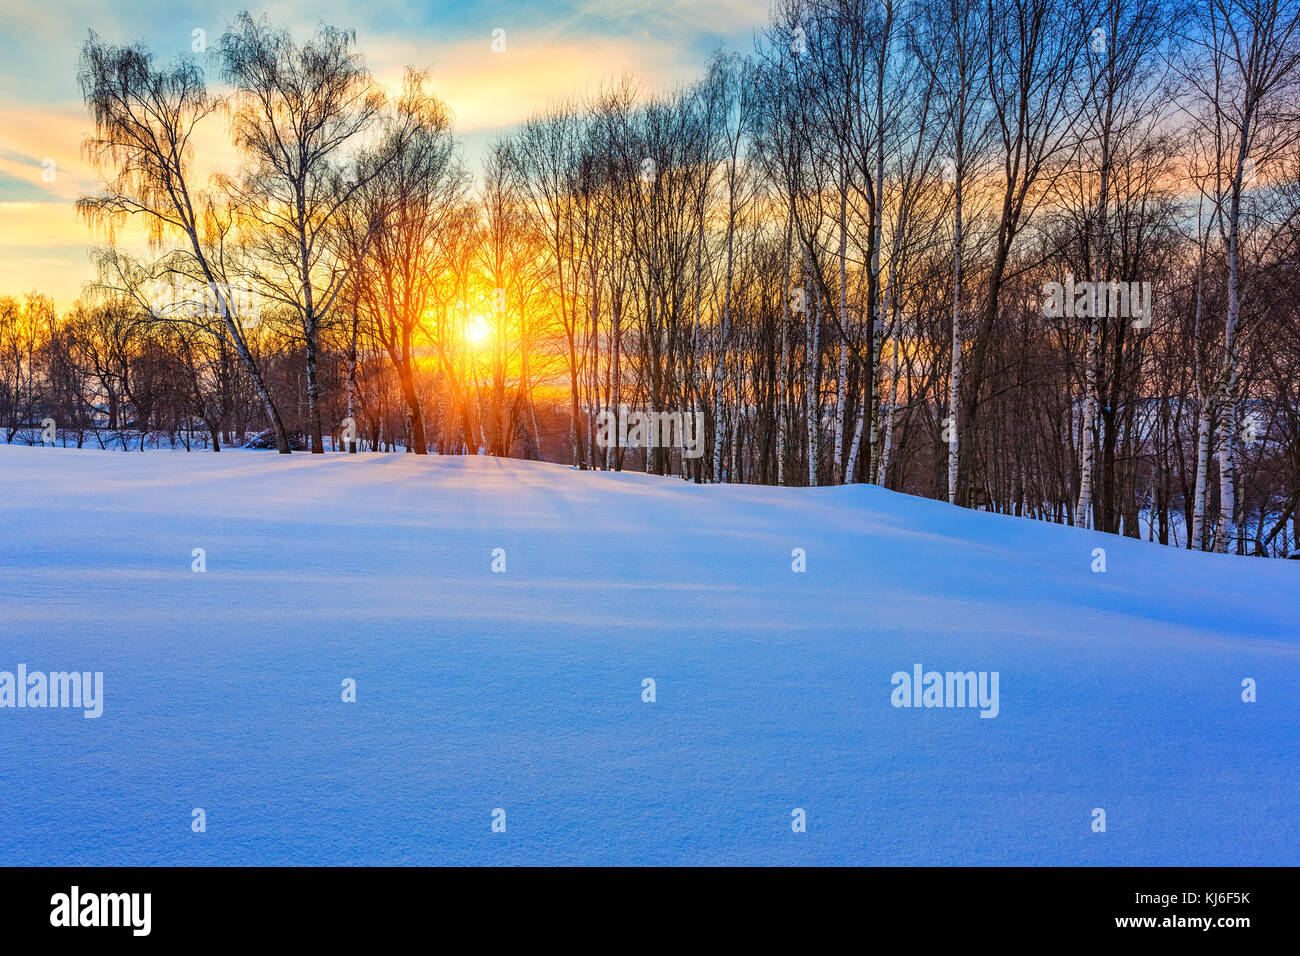 Colorful winter sunset - Stock Image